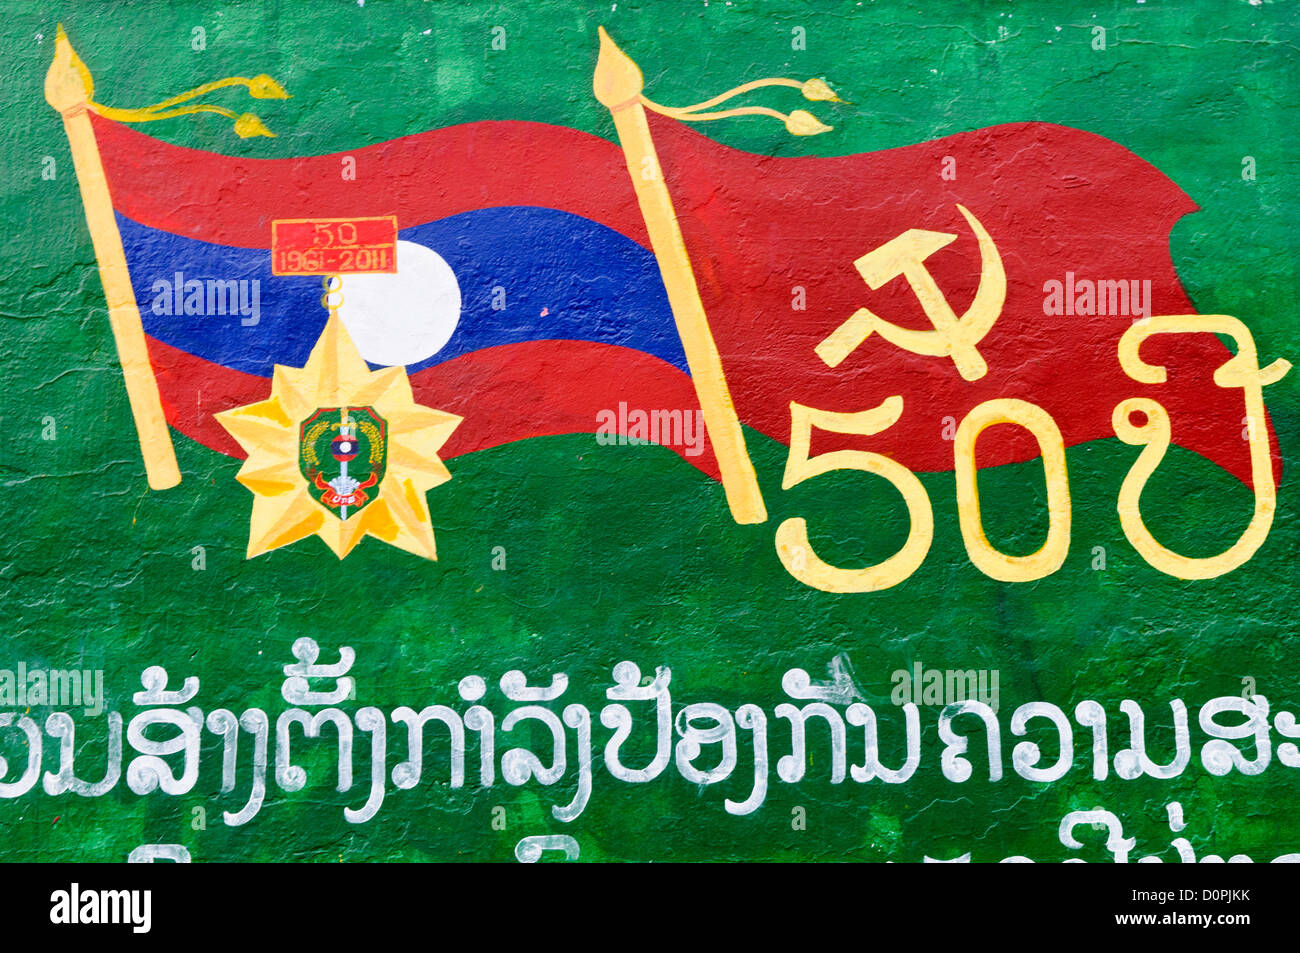 LUANG NAMTHA, Laos - Signs commemorating the 50th anniversary of the establishment of the Lao police force. The - Stock Image